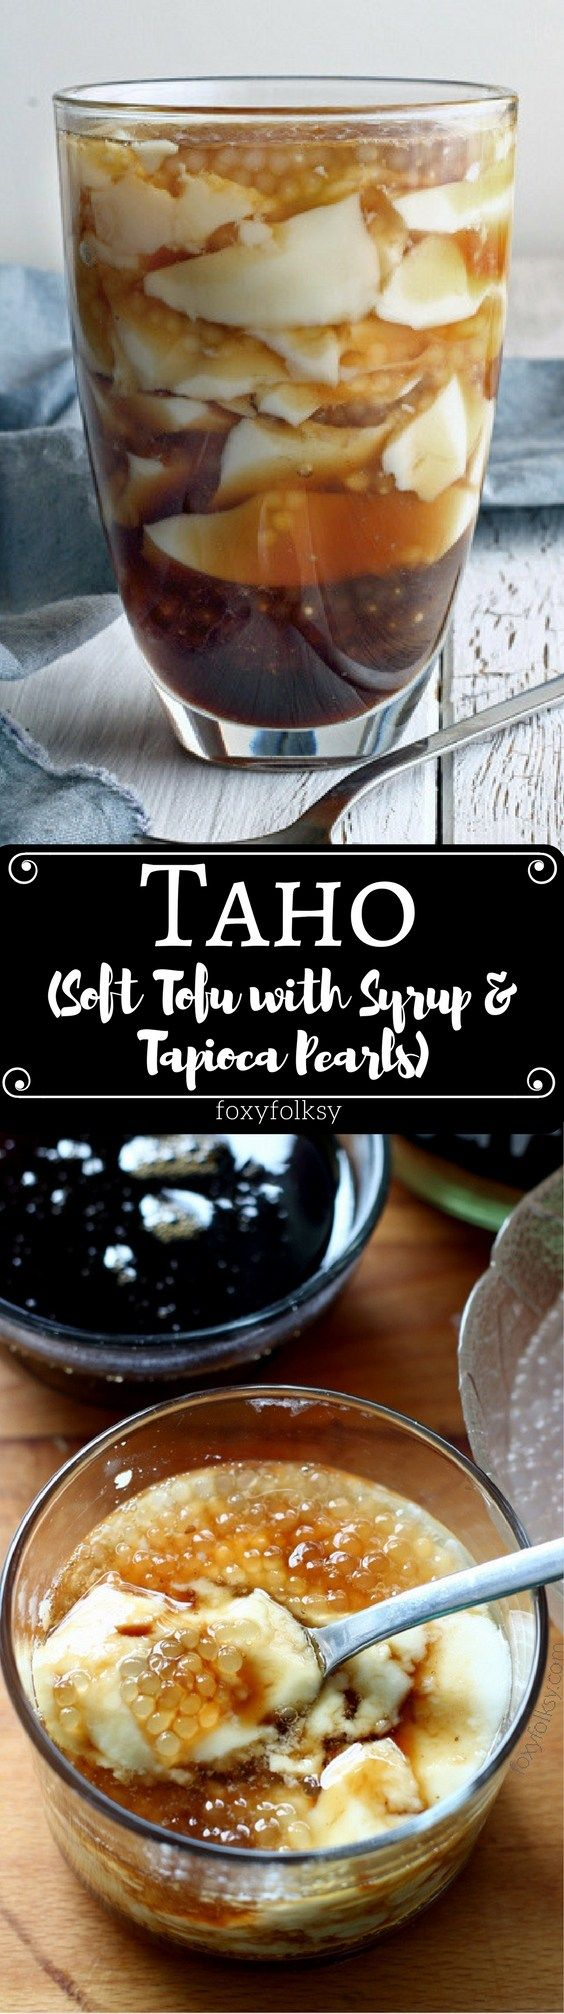 Try This Taho Recipe And Learn How To Make Taho At Home It Is Really Easy Www Foxyfolksy Com Food Recipes Filipino Food Dessert